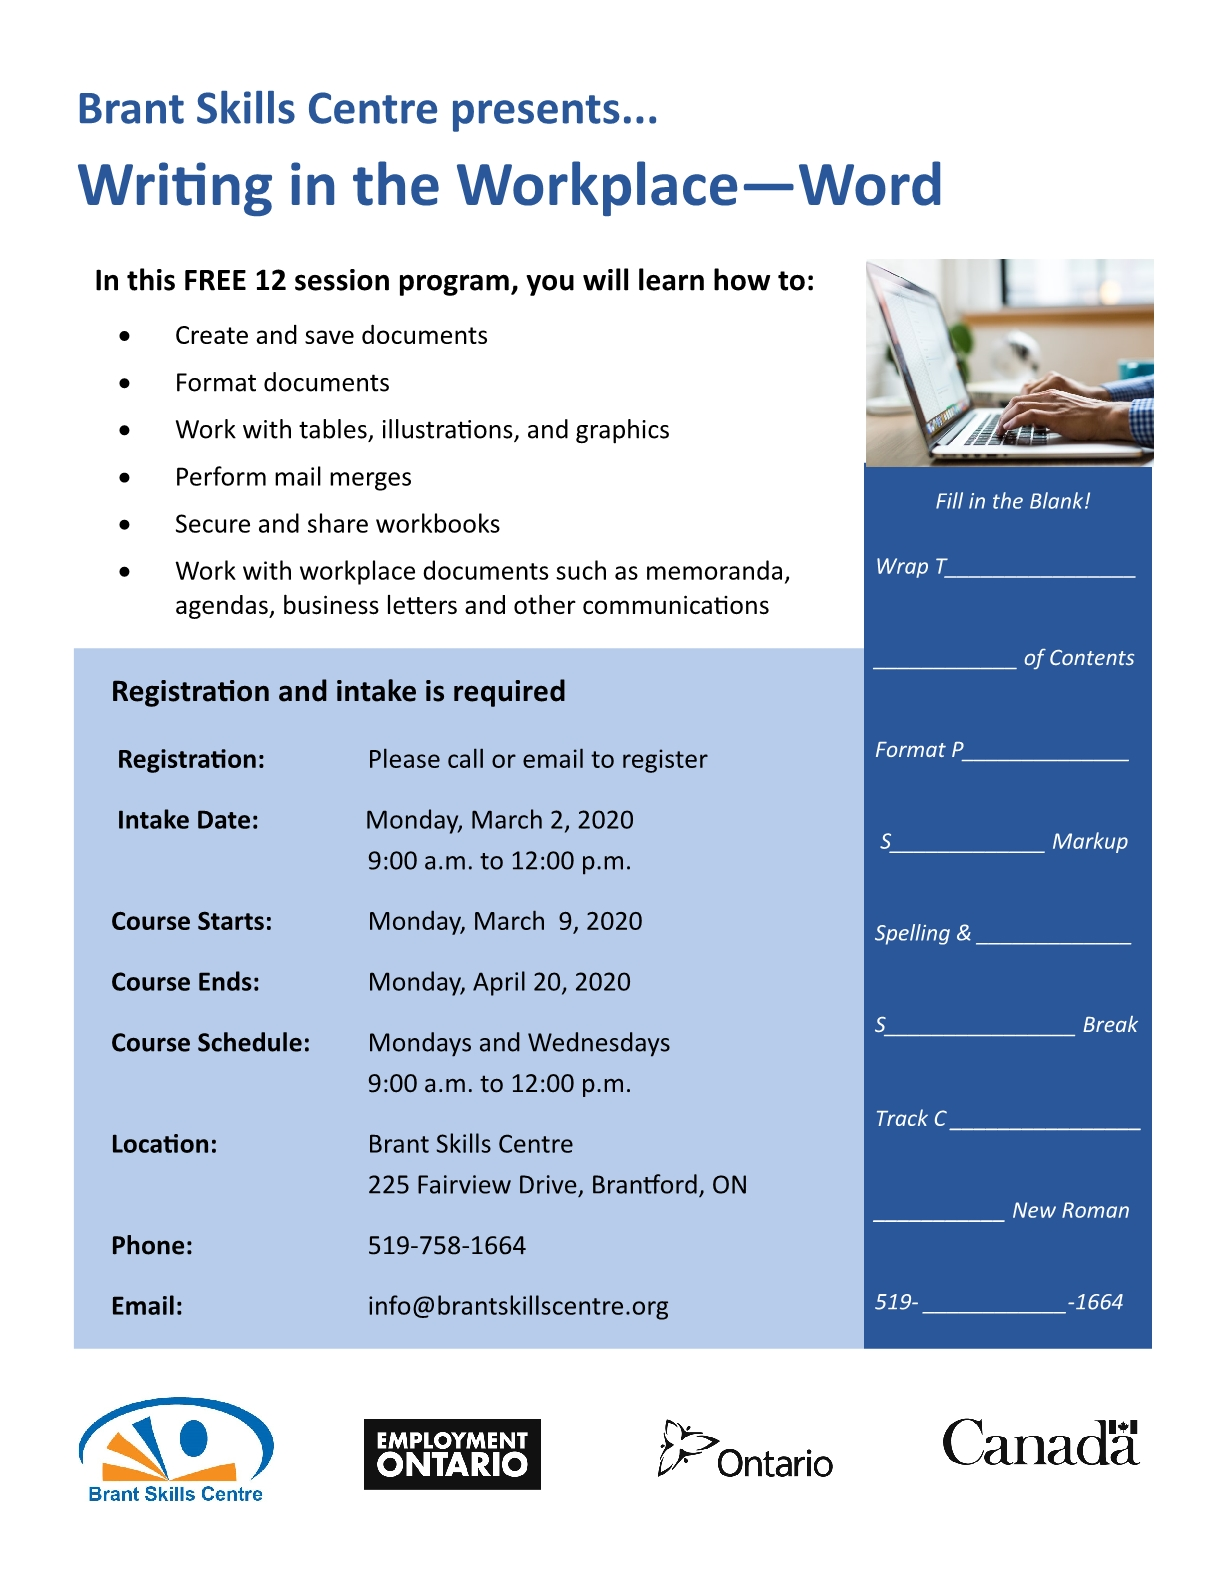 Microsoft Word - Writing in the Workplace poster